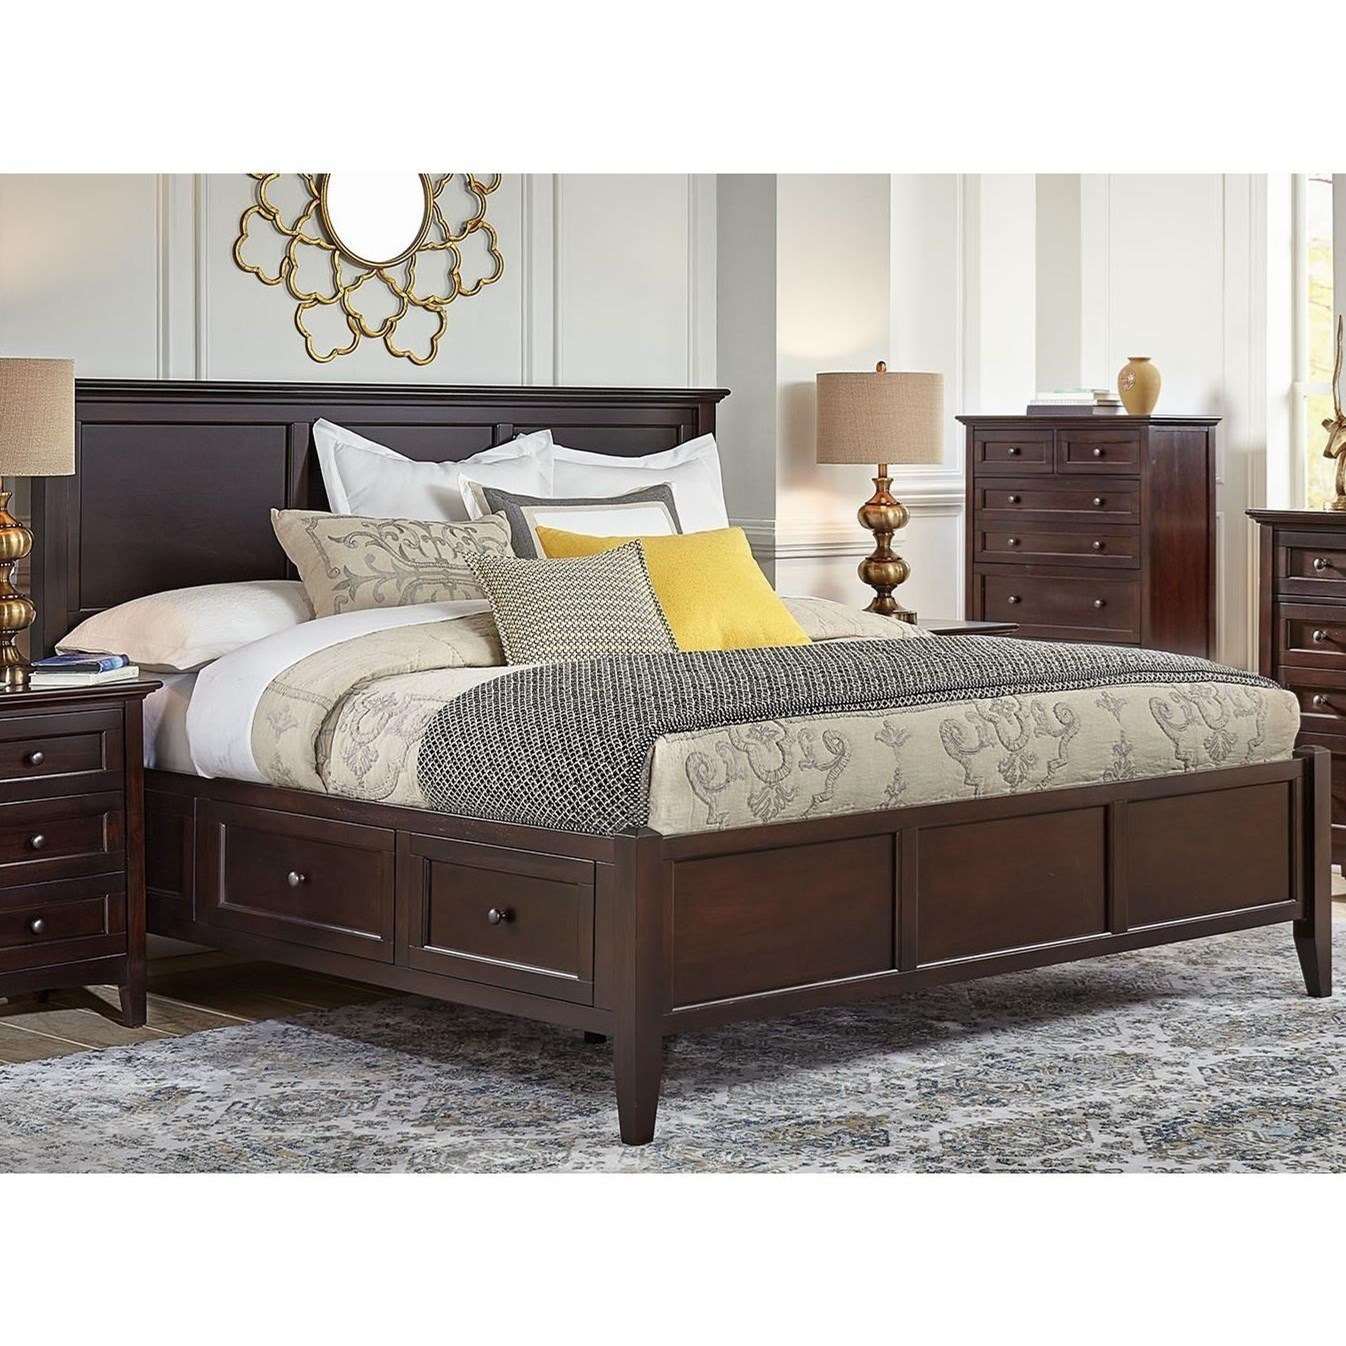 Westlake California King Storage Bed by A-A at Walker's Furniture